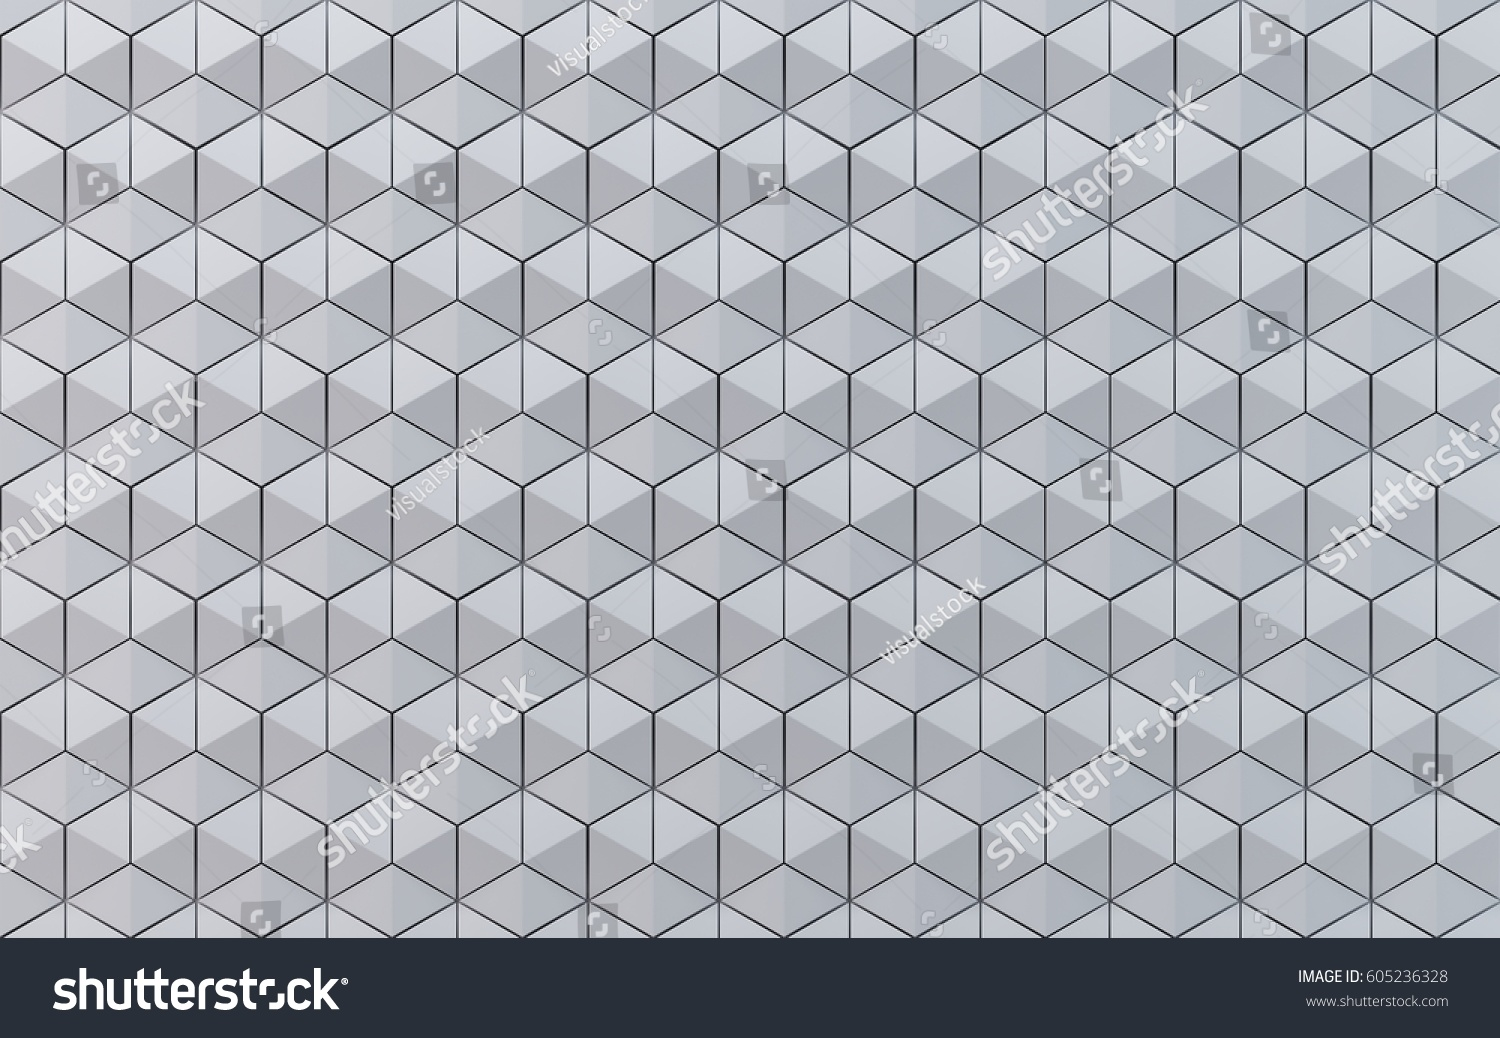 white hexahedron mosaic background creative design stock illustration 605236328 shutterstock. Black Bedroom Furniture Sets. Home Design Ideas